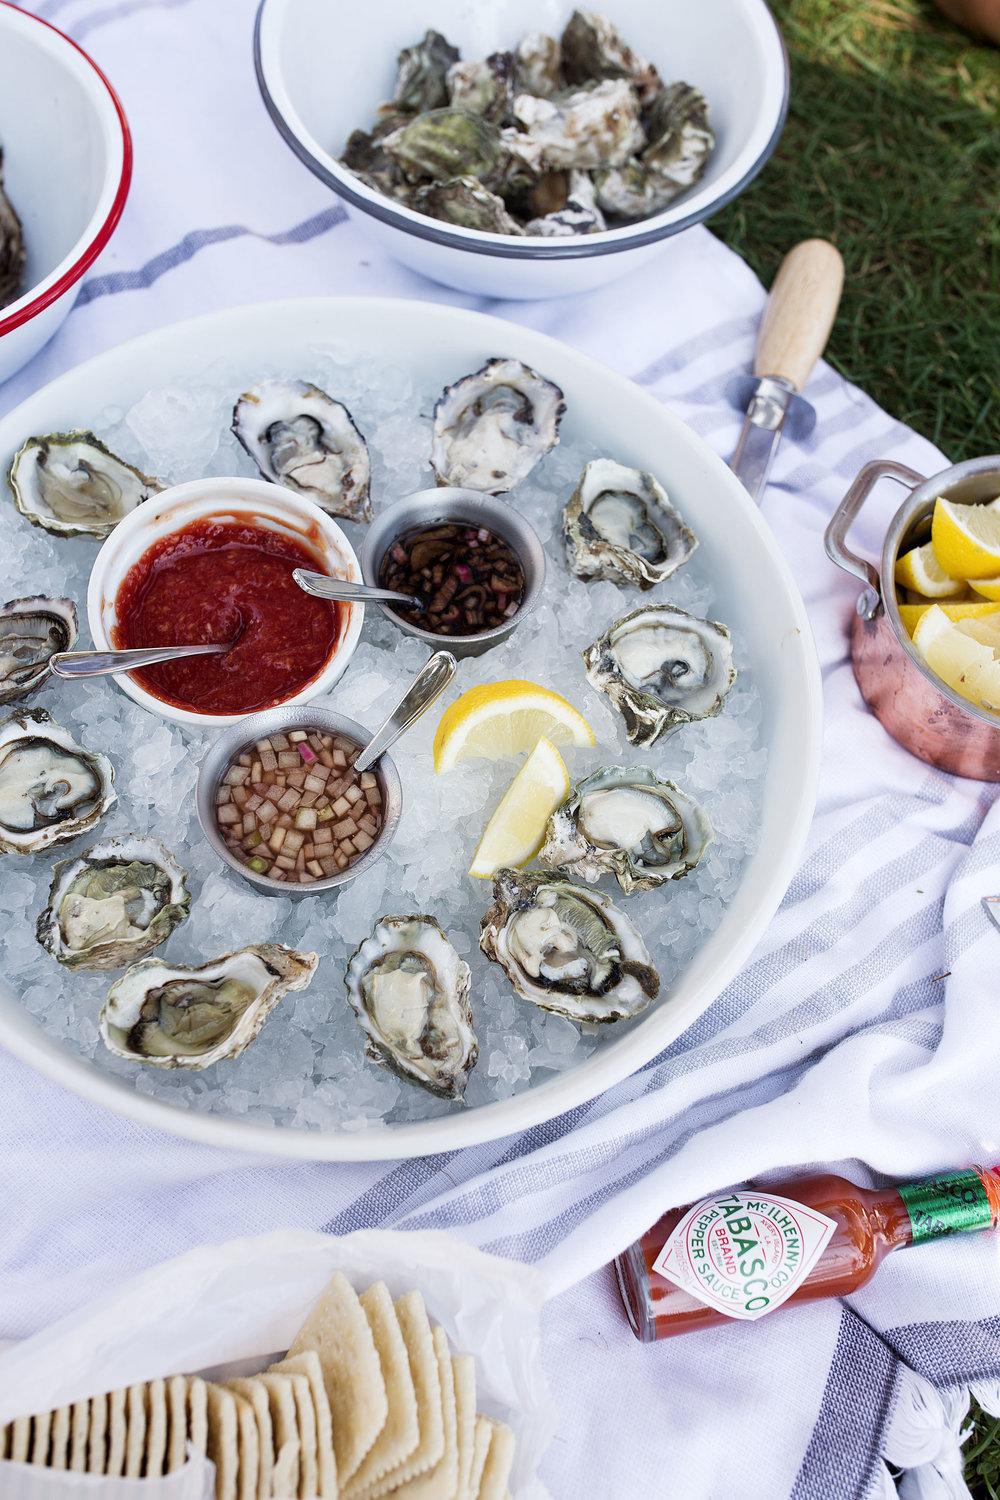 shuck yeah: all about oysters in the park